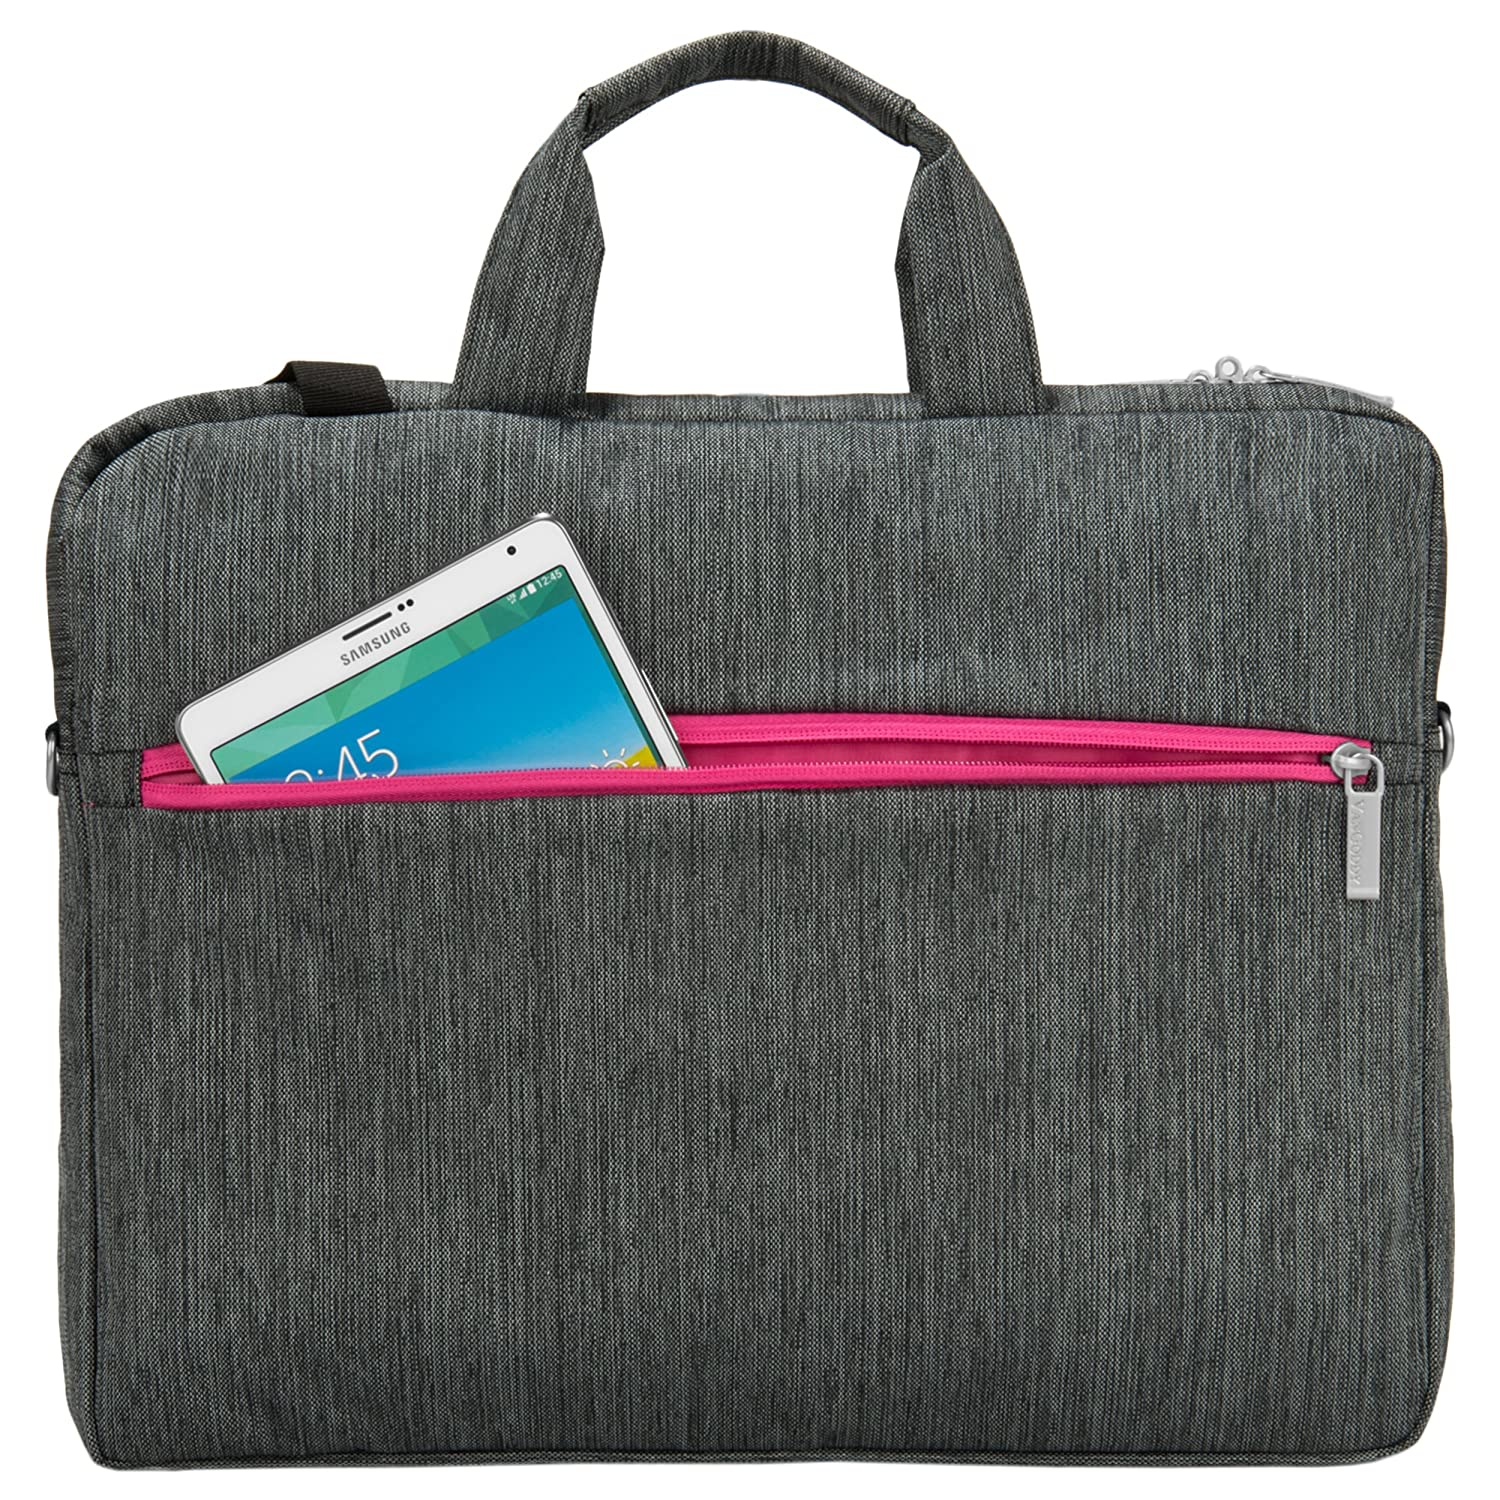 Amazon.com: Wave Laptop Briefcase Sleeve Carrying Bag for 15 ...